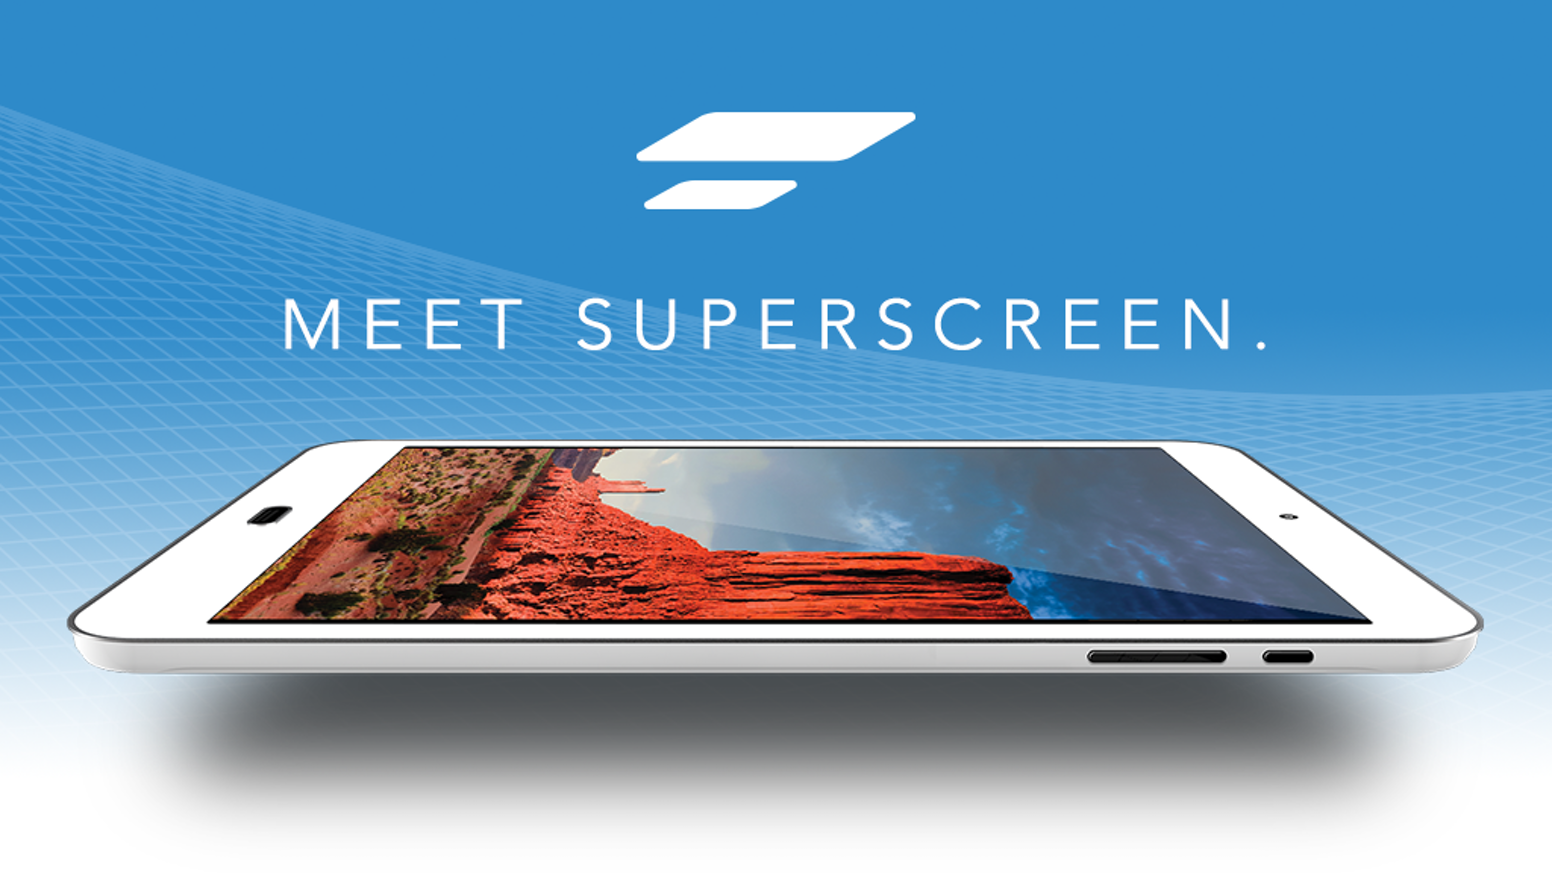 Superscreen gives you the benefits of a tablet with the power and convenience of your phone.